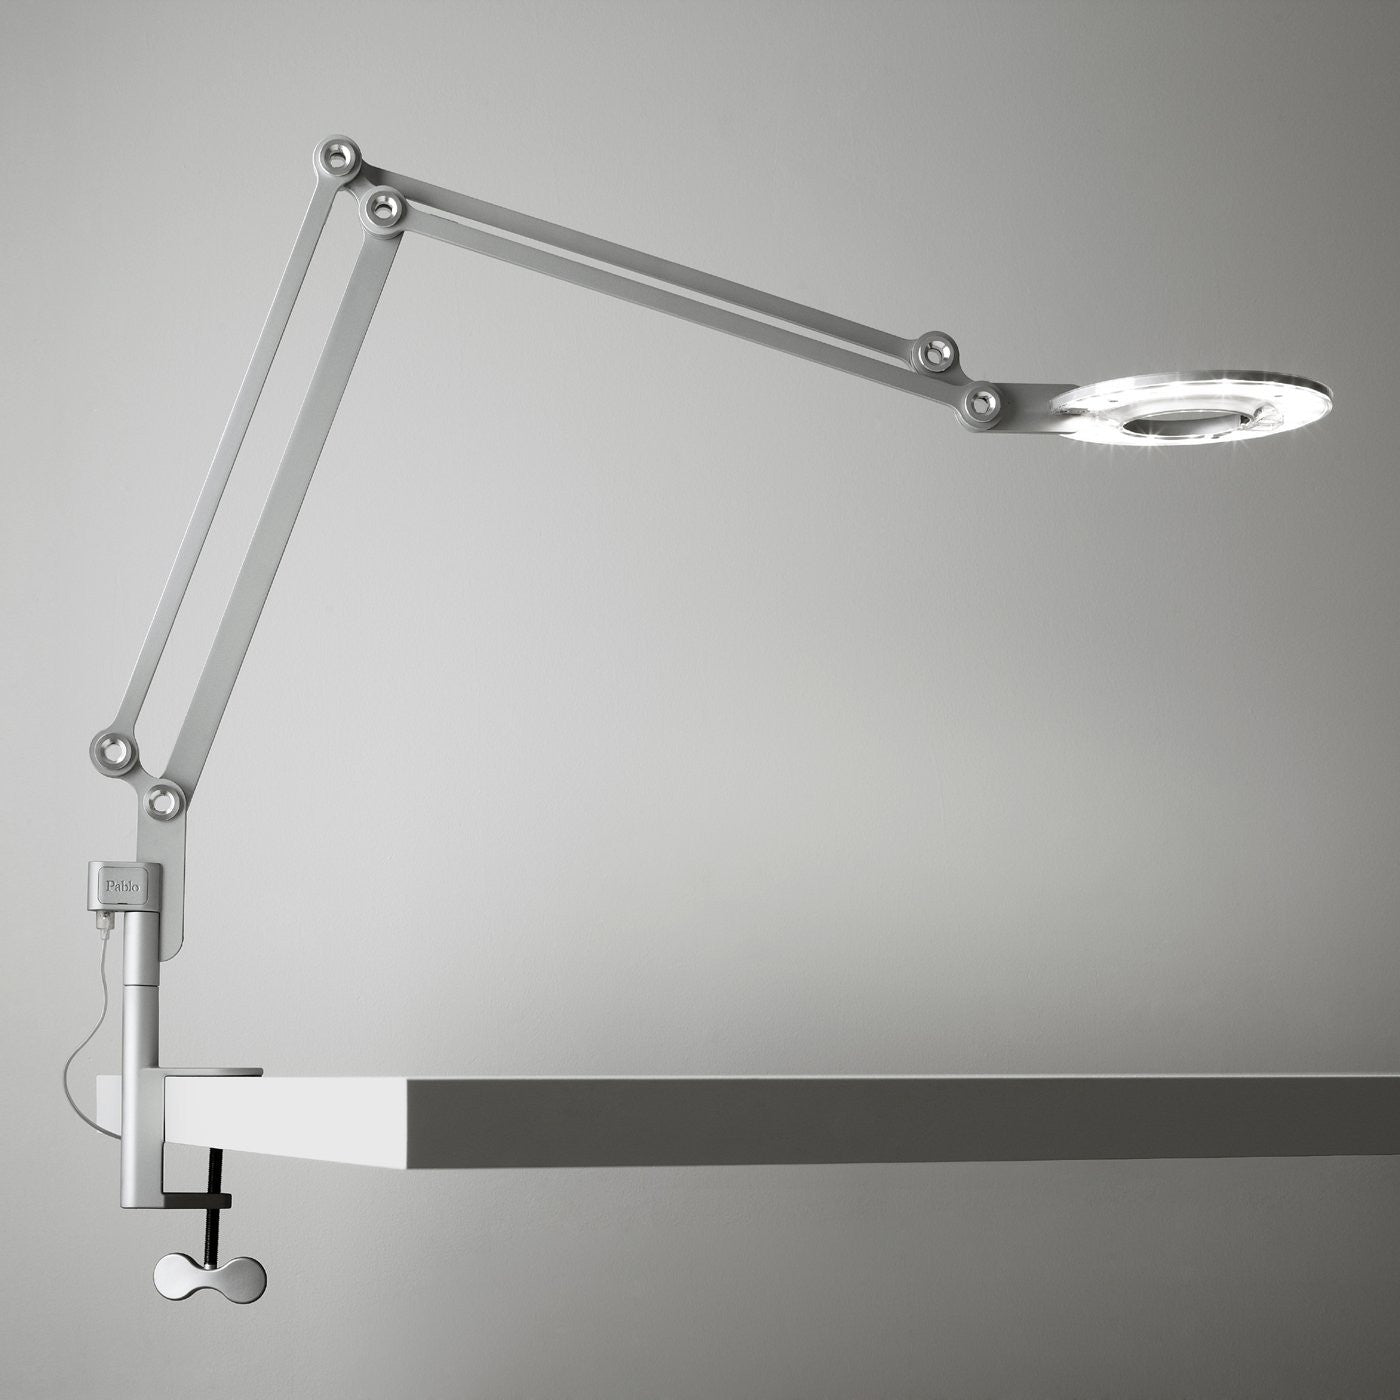 light en table modern and lighting p clamp tavolo cache fortebraccio with luceplan